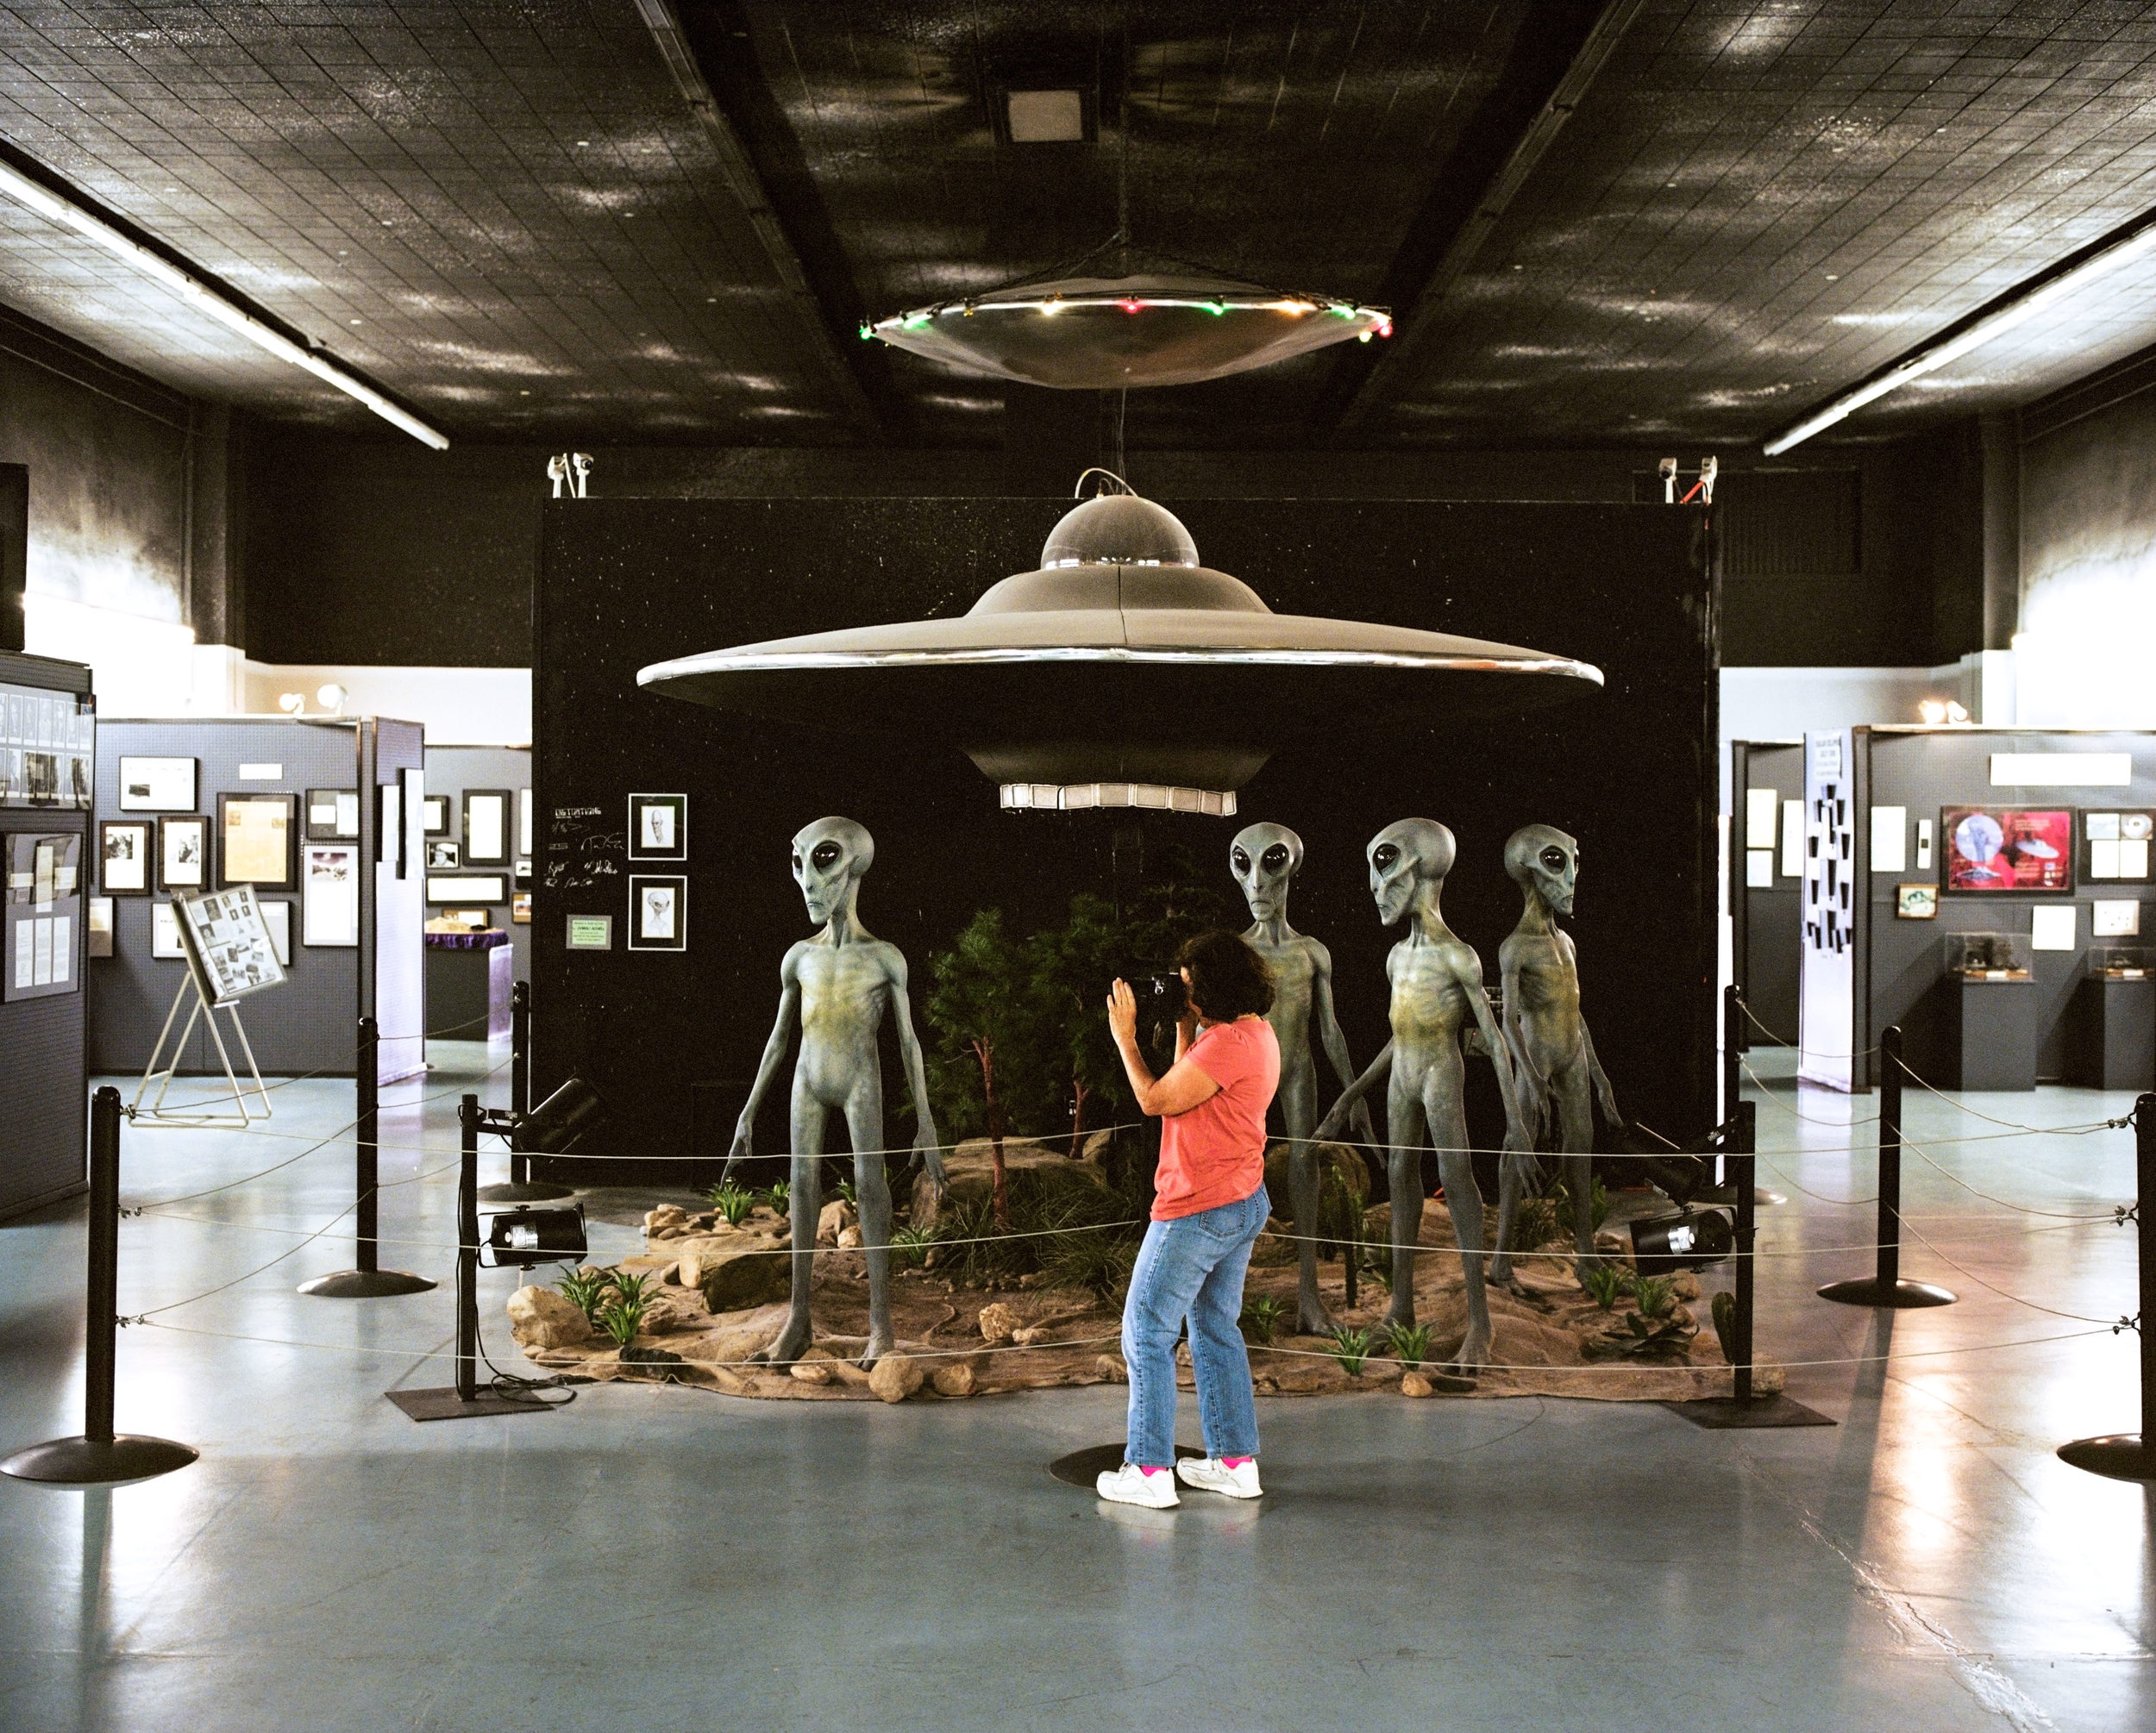 Roswell UFO Museum, NM